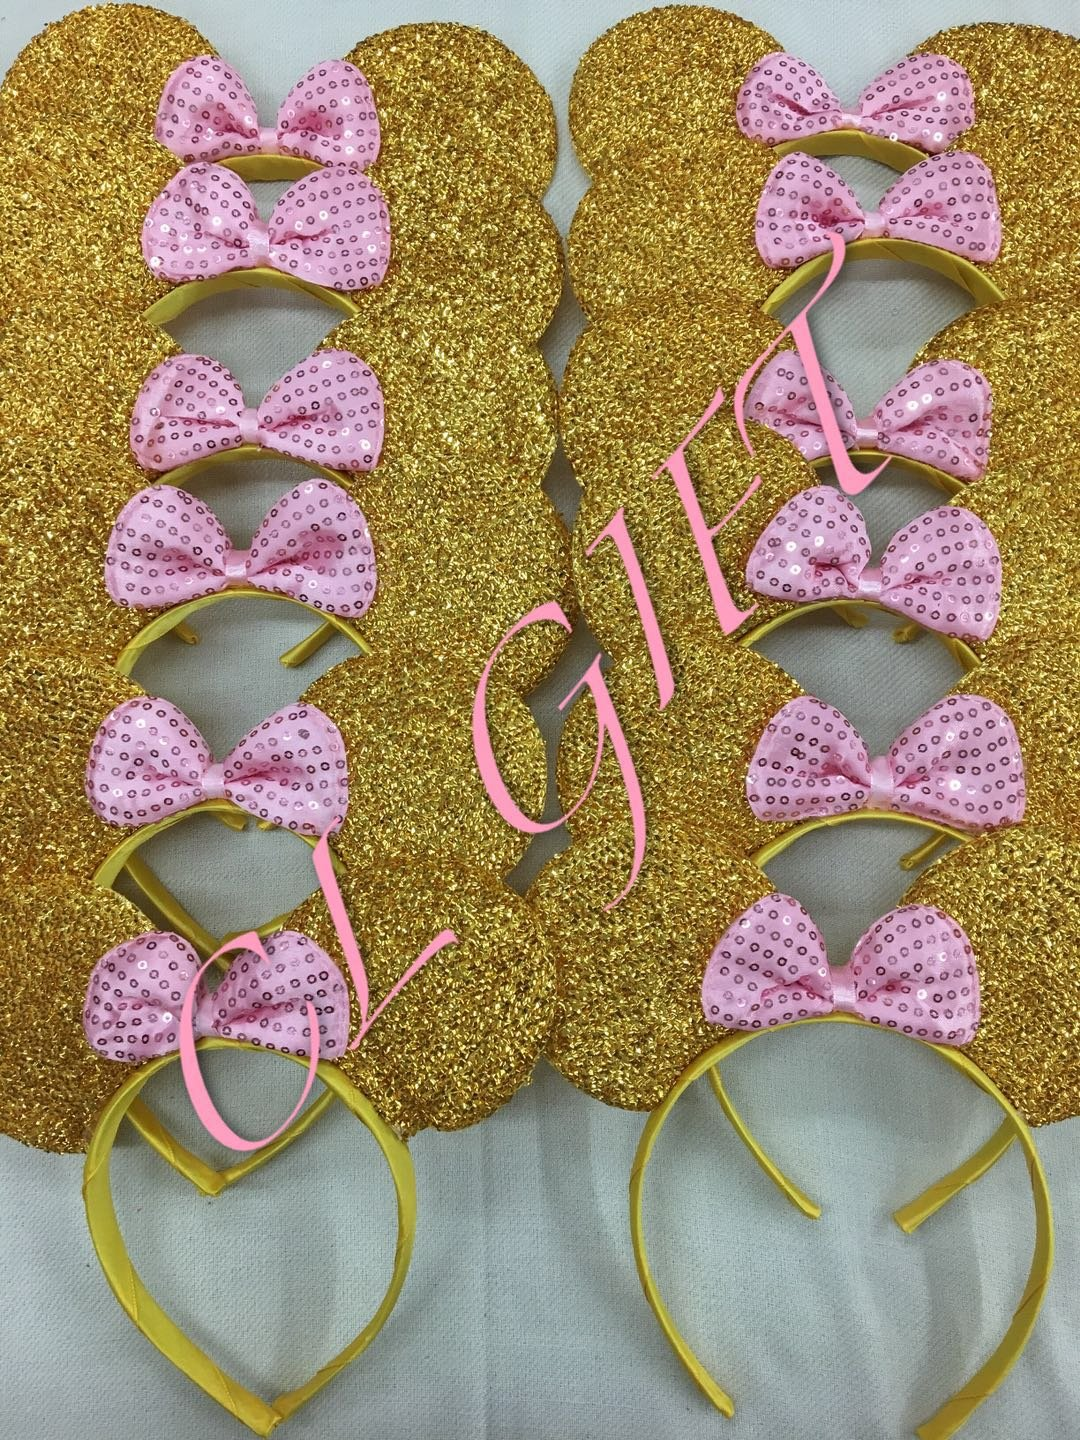 Set of 12 - CL GIFT Yellow Minnie Mouse Ears Baby Pink Sequin Bow - Gold Mickey Mouse Ears Disney Ears Minnie Mouse Bow Minnie Mouse